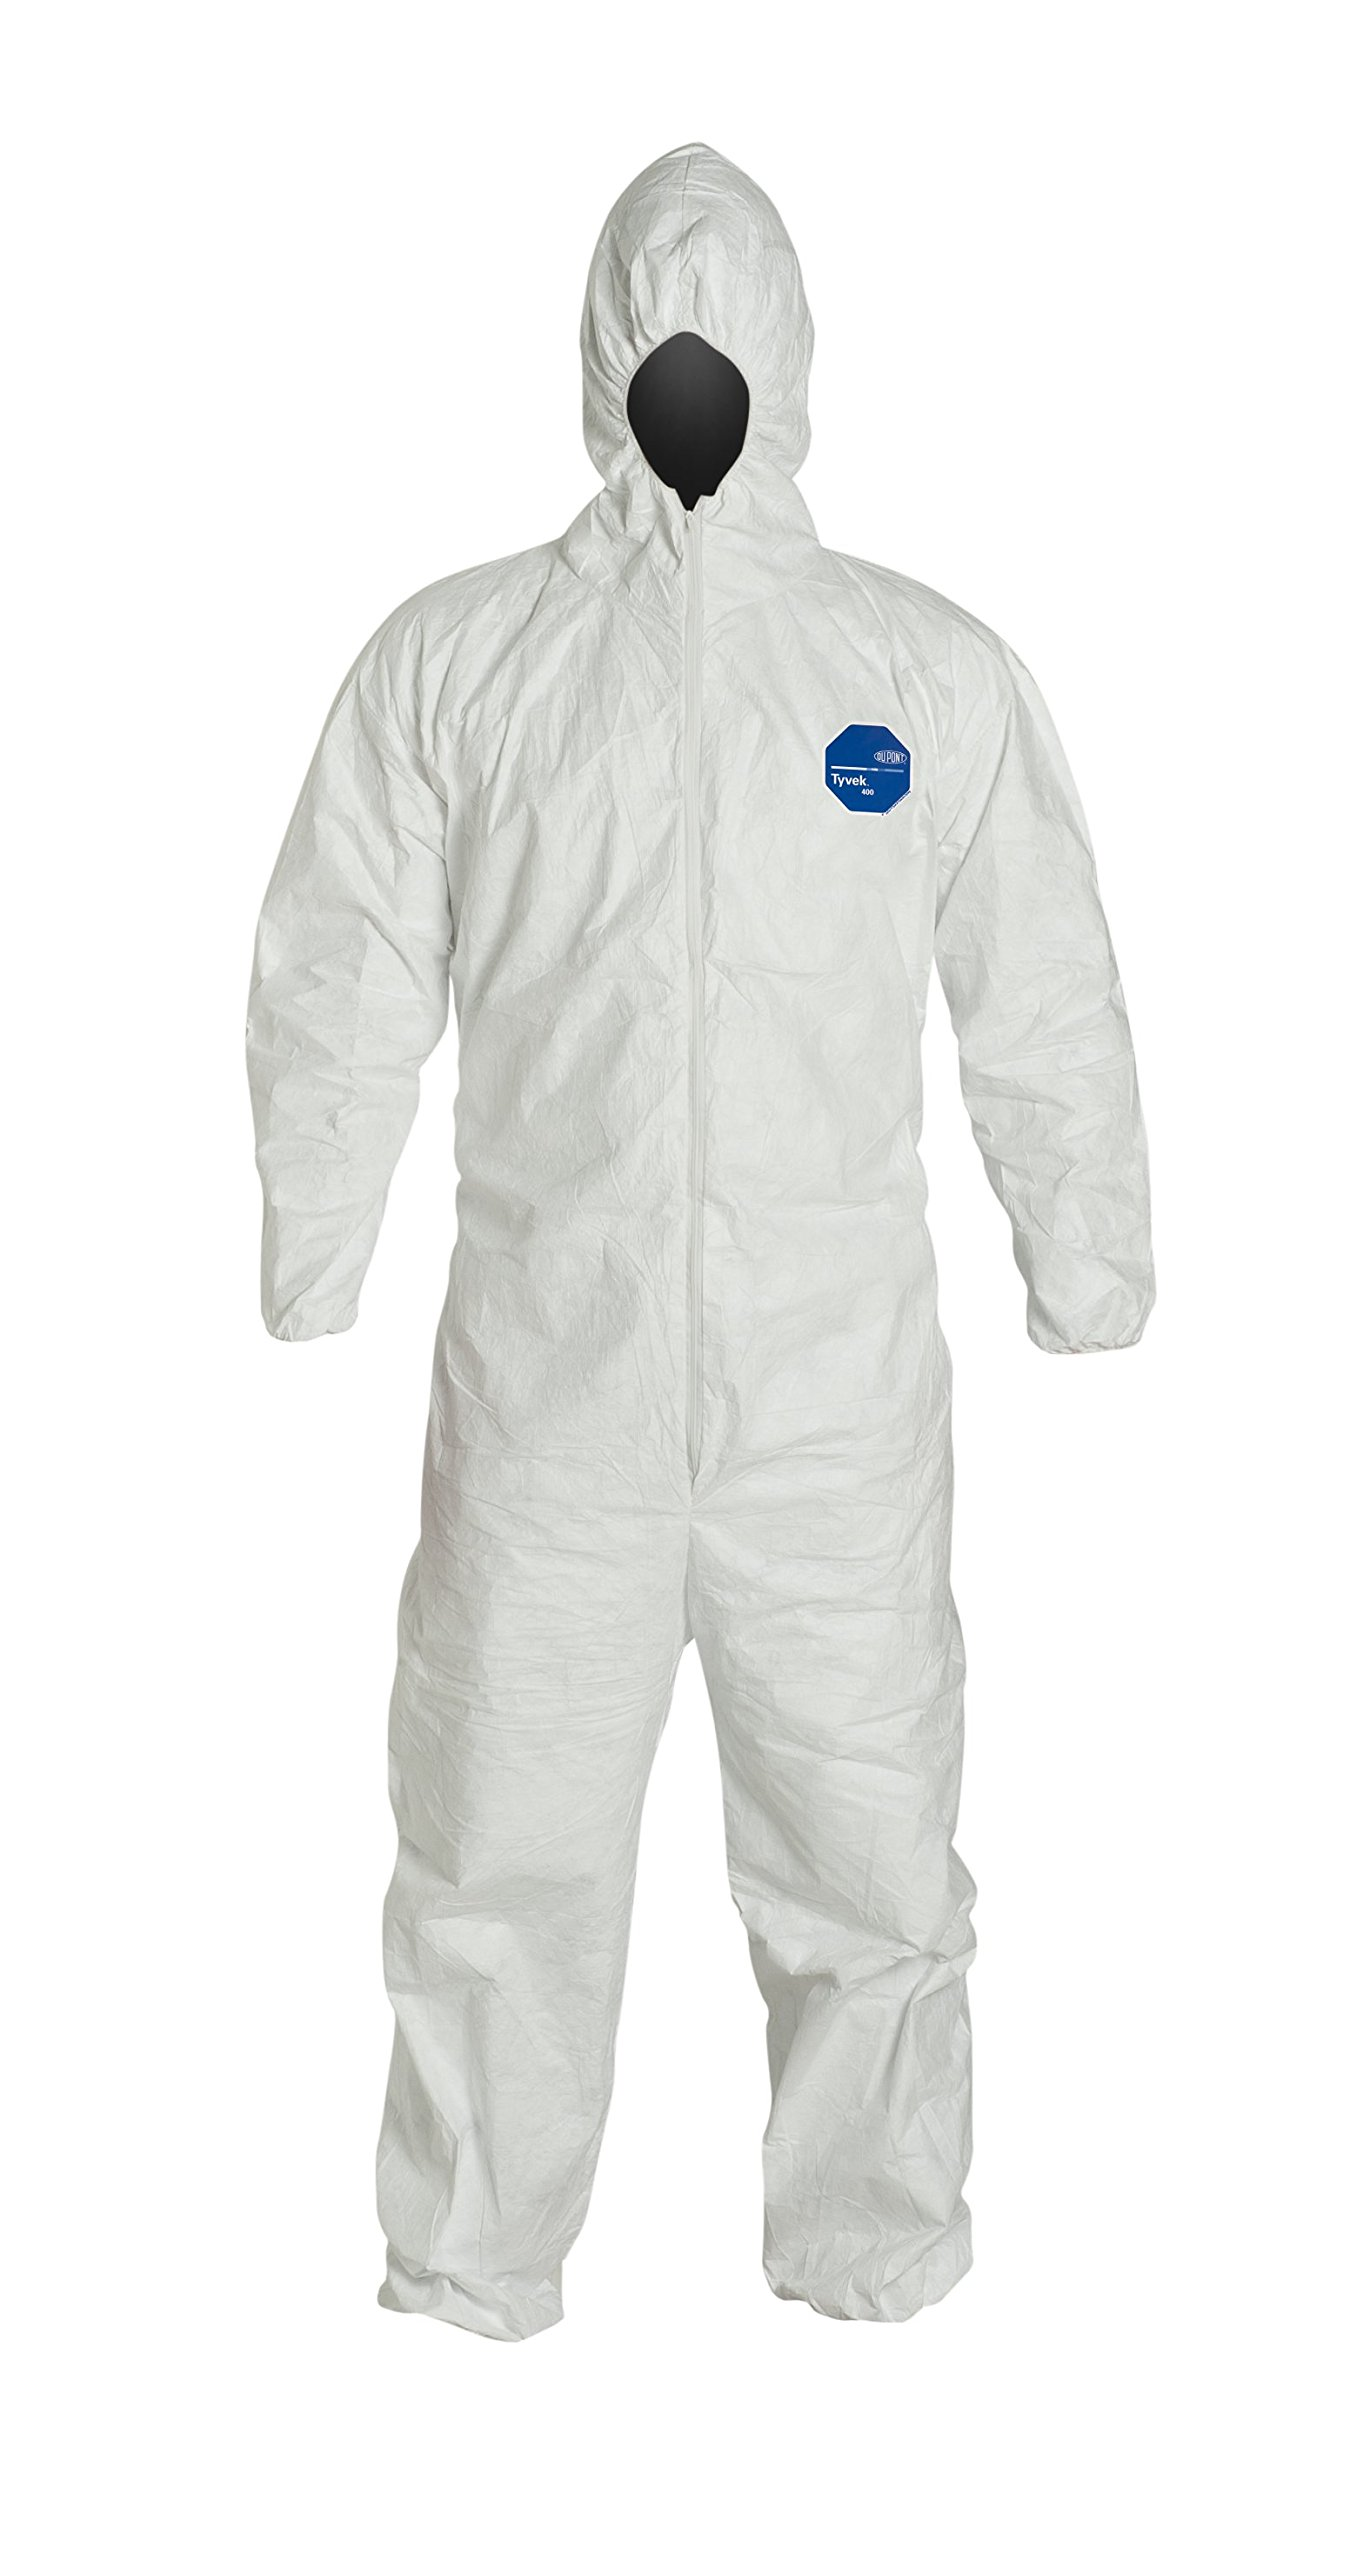 DuPont Tyvek 400 TY127S  Protective Coverall with Hood, Disposable, Elastic Cuff, White, X-Large (Pack of 25) by DuPont (Image #1)